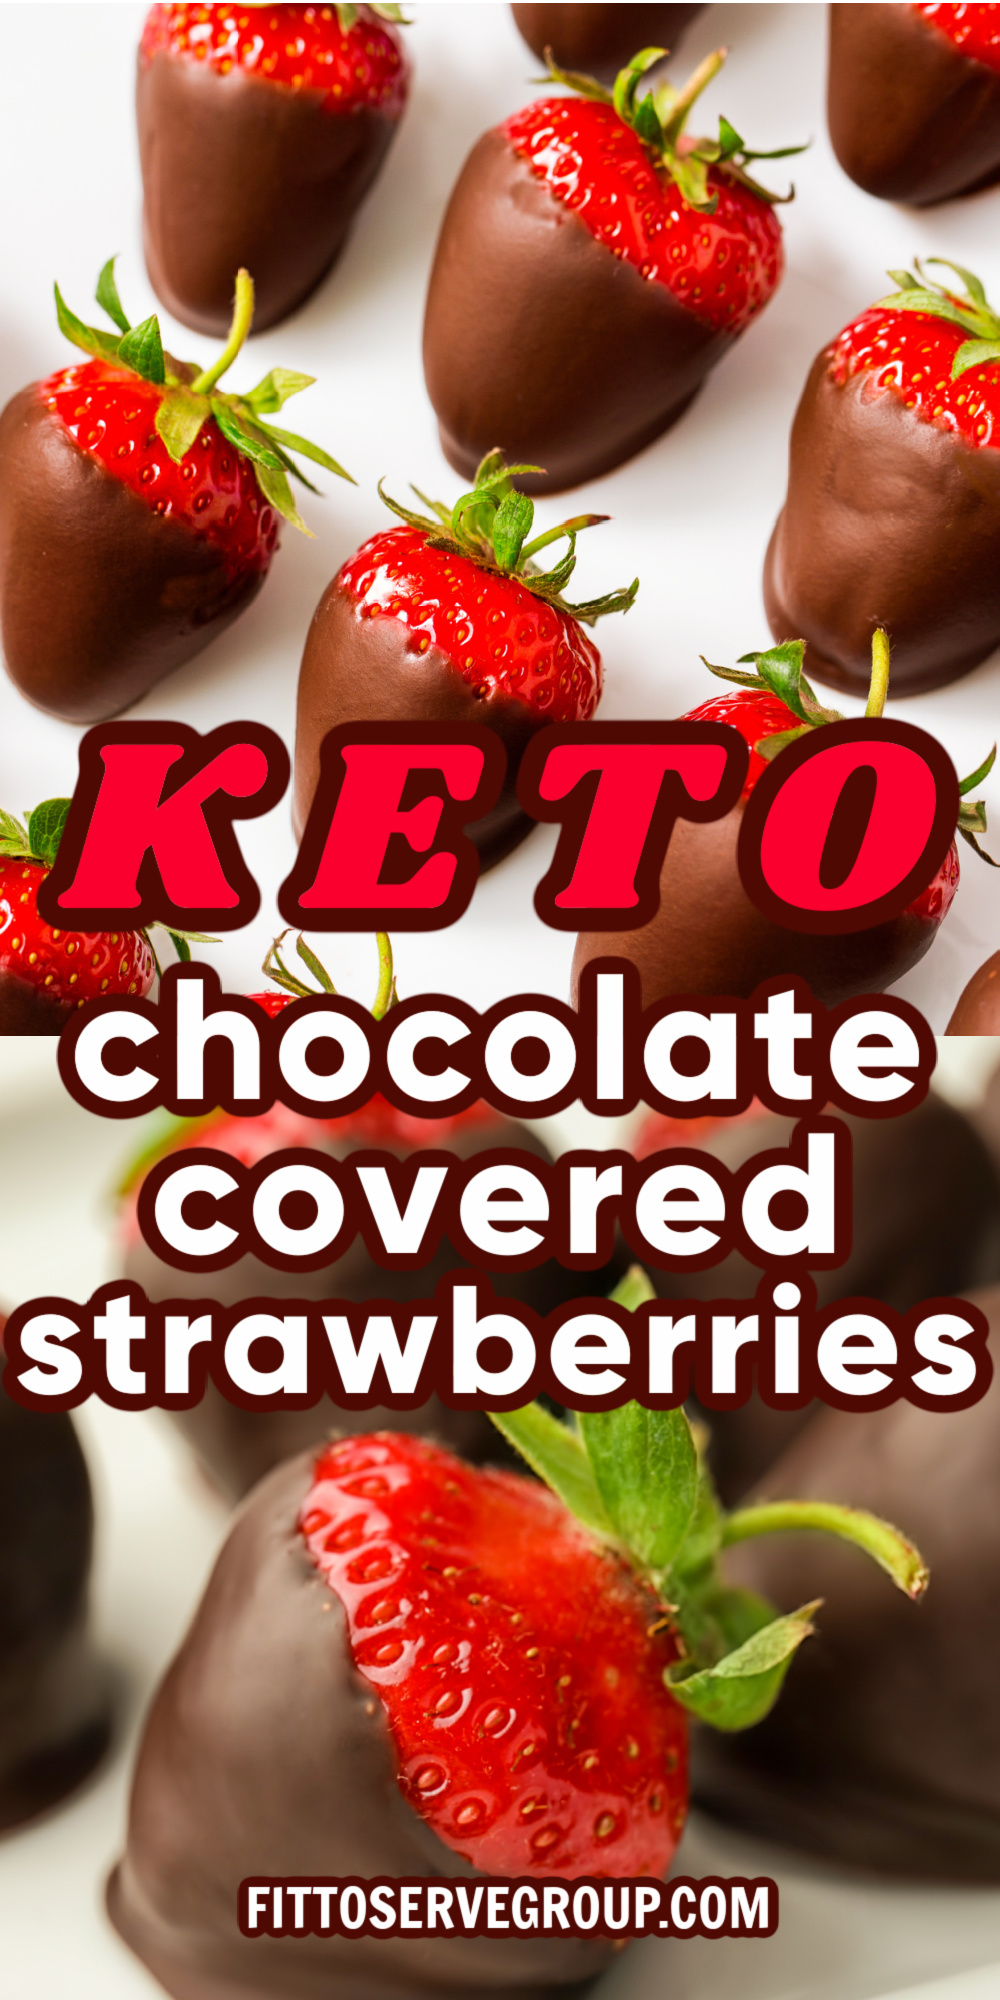 Keto chocolate covered strawberries displayed on a white background